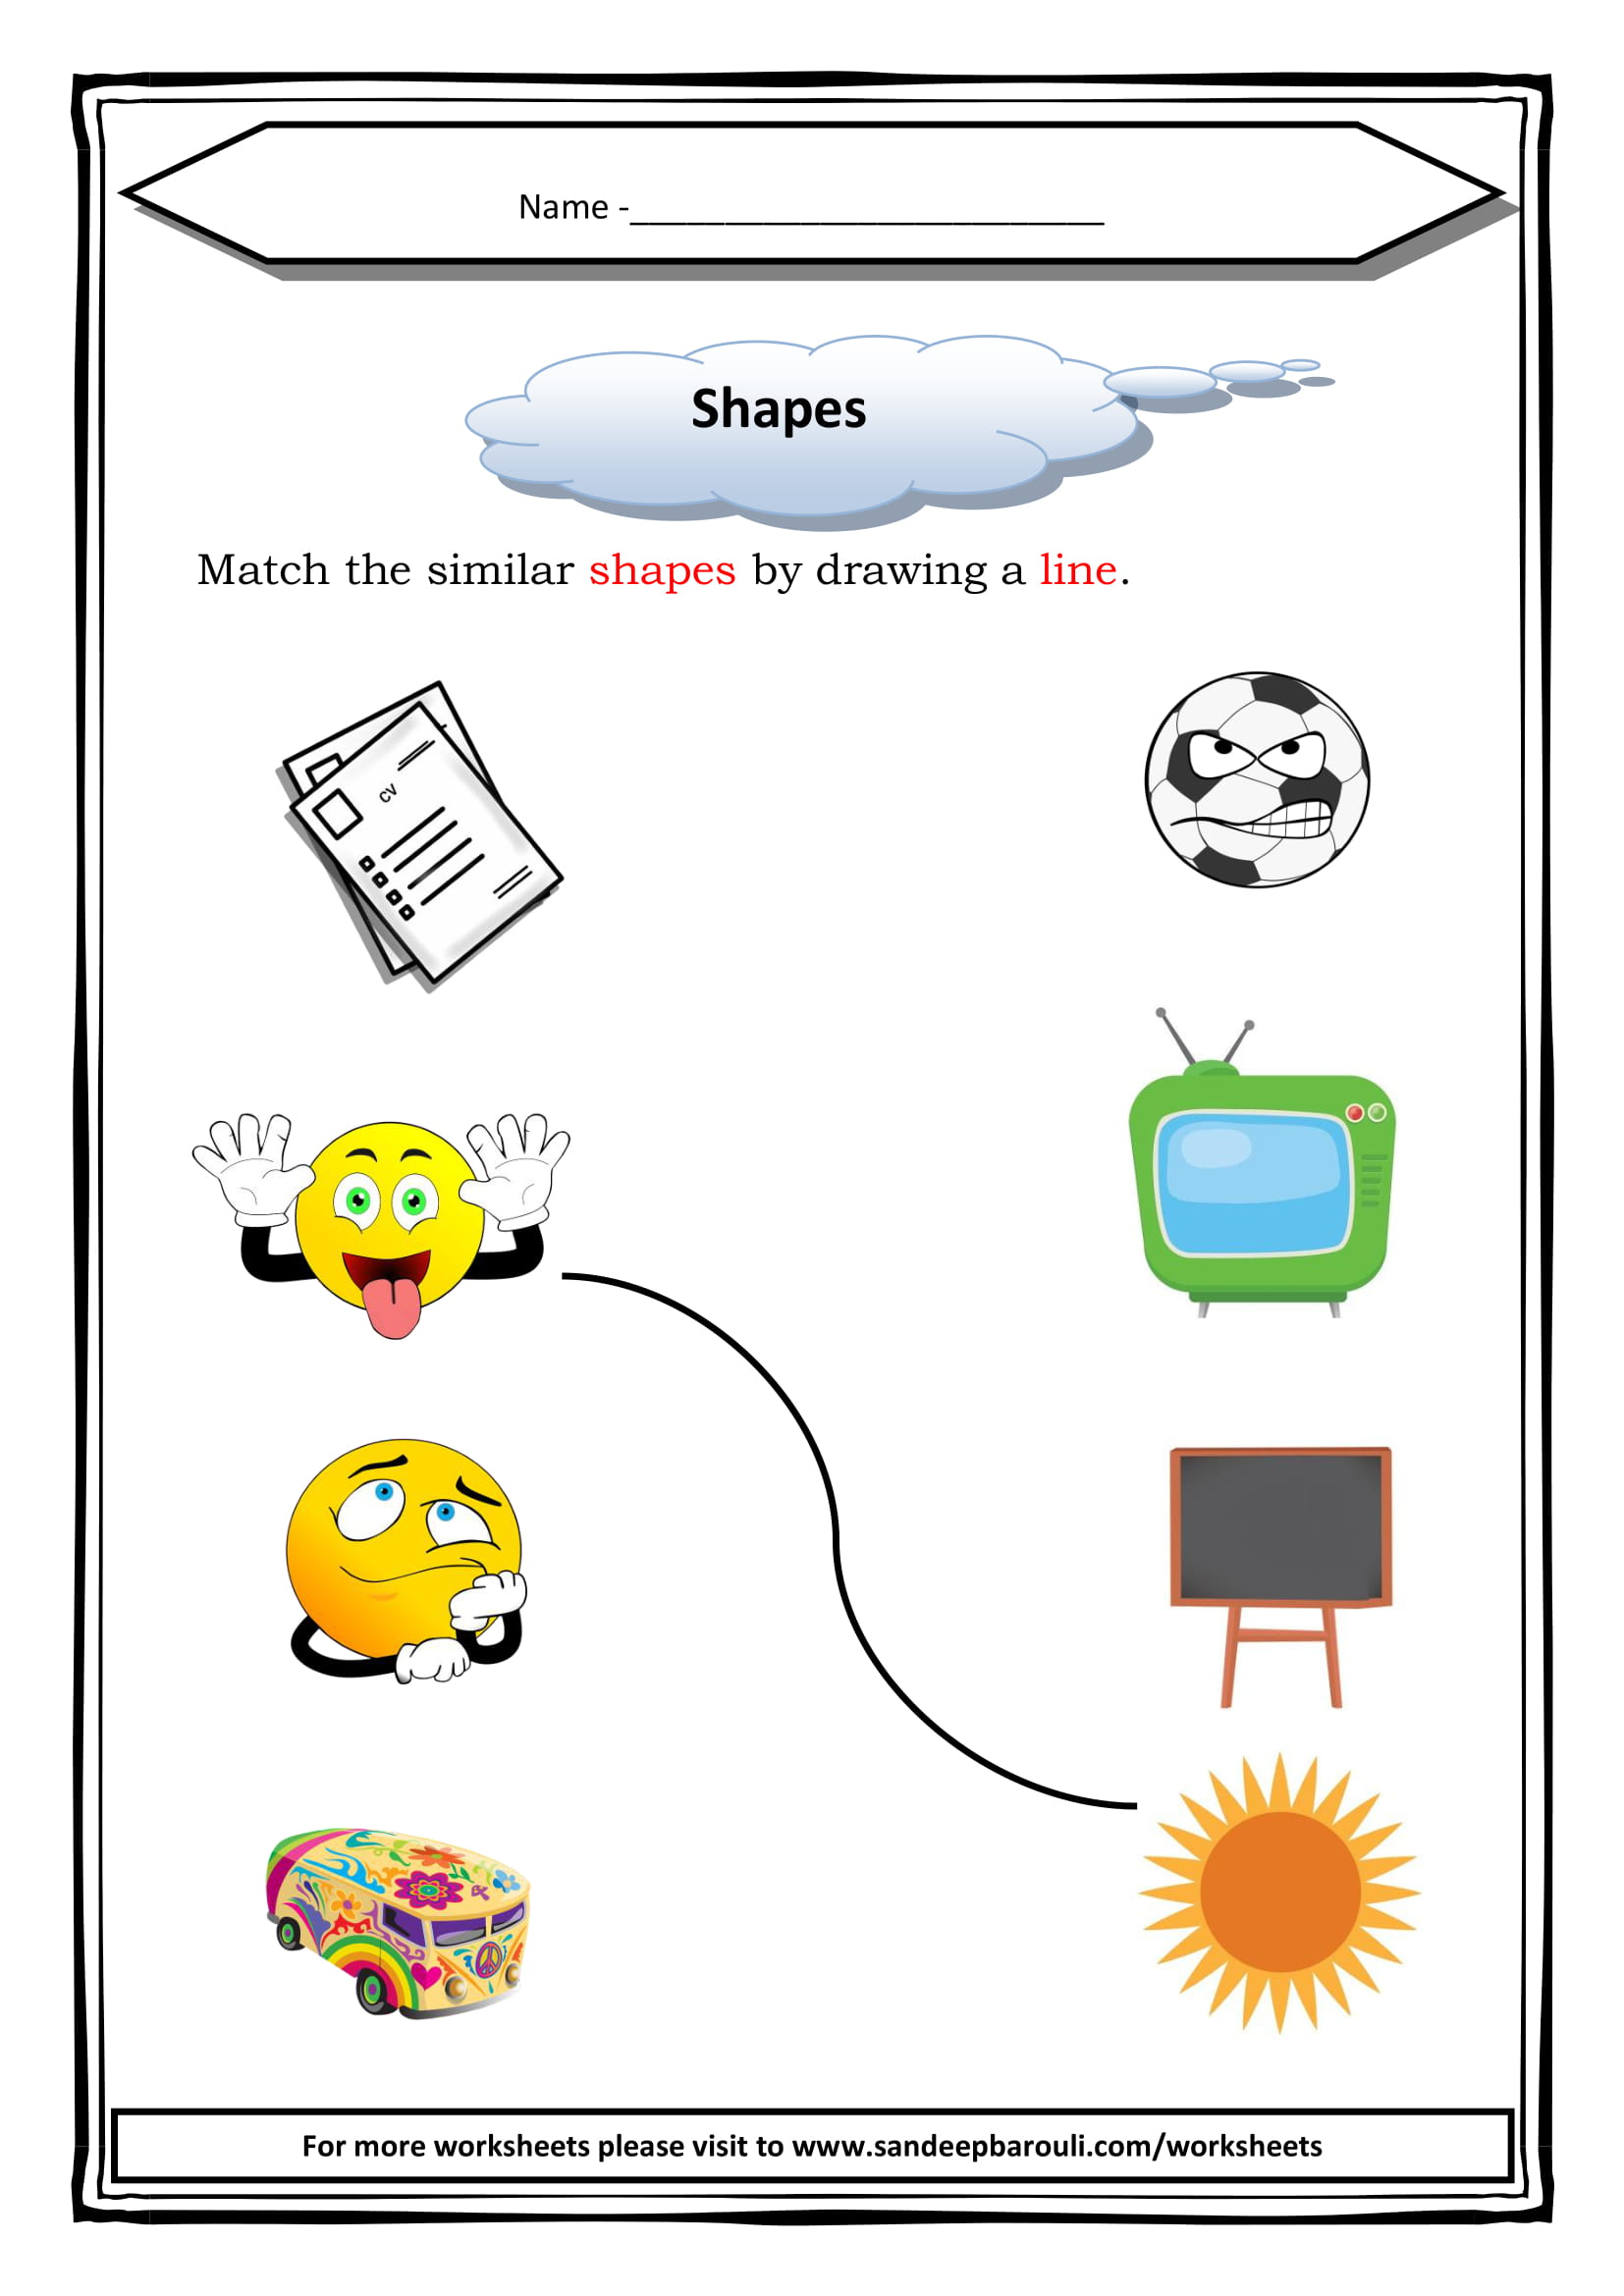 Match The Similar Shapes Worksheet For Class 1